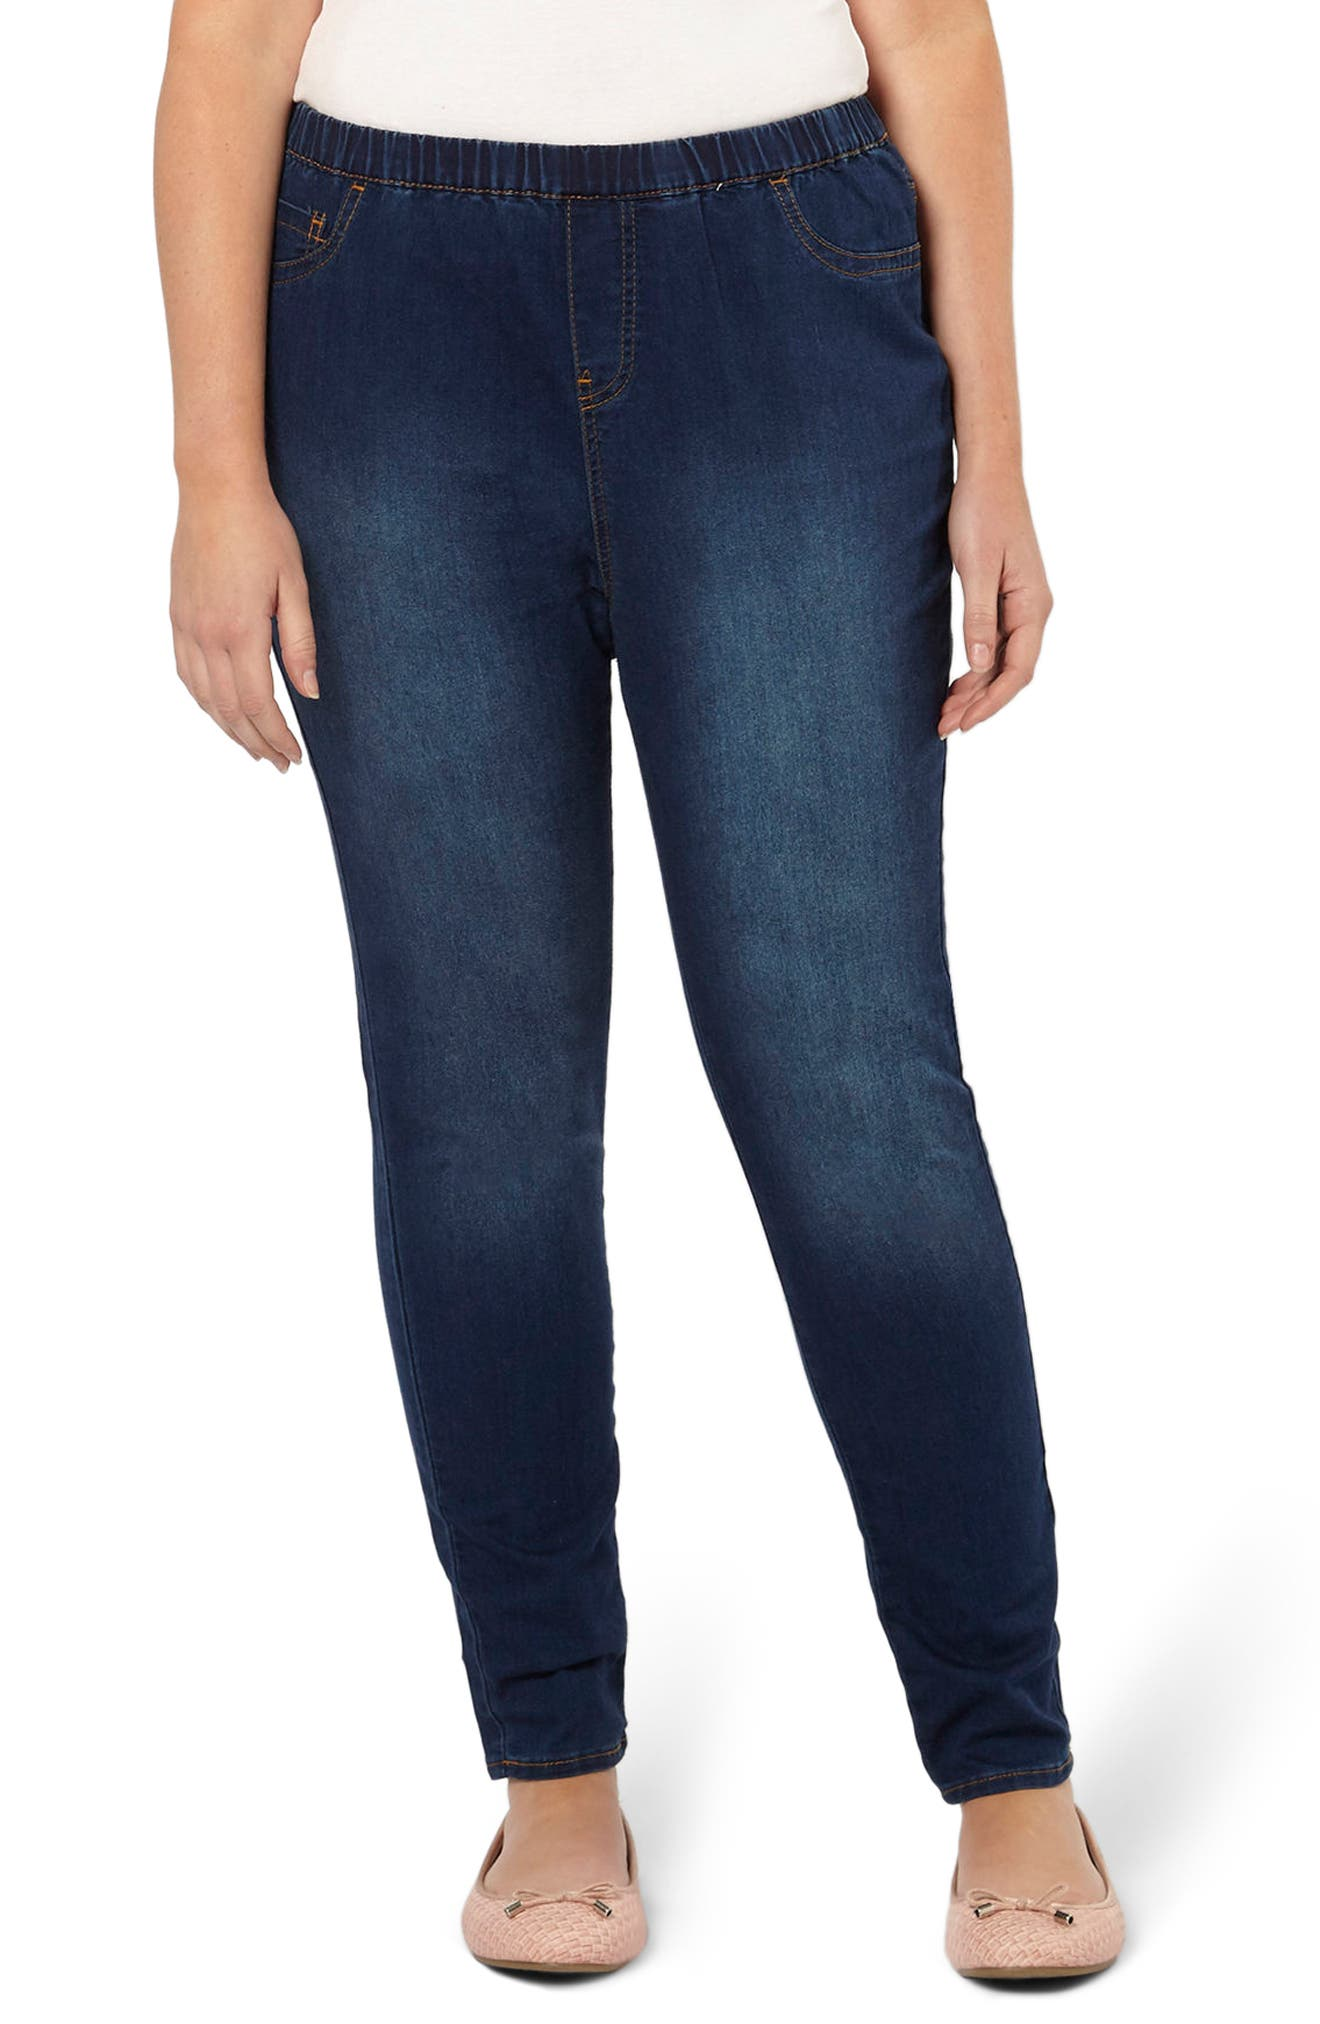 Denim Leggings,                         Main,                         color, Mid Wash